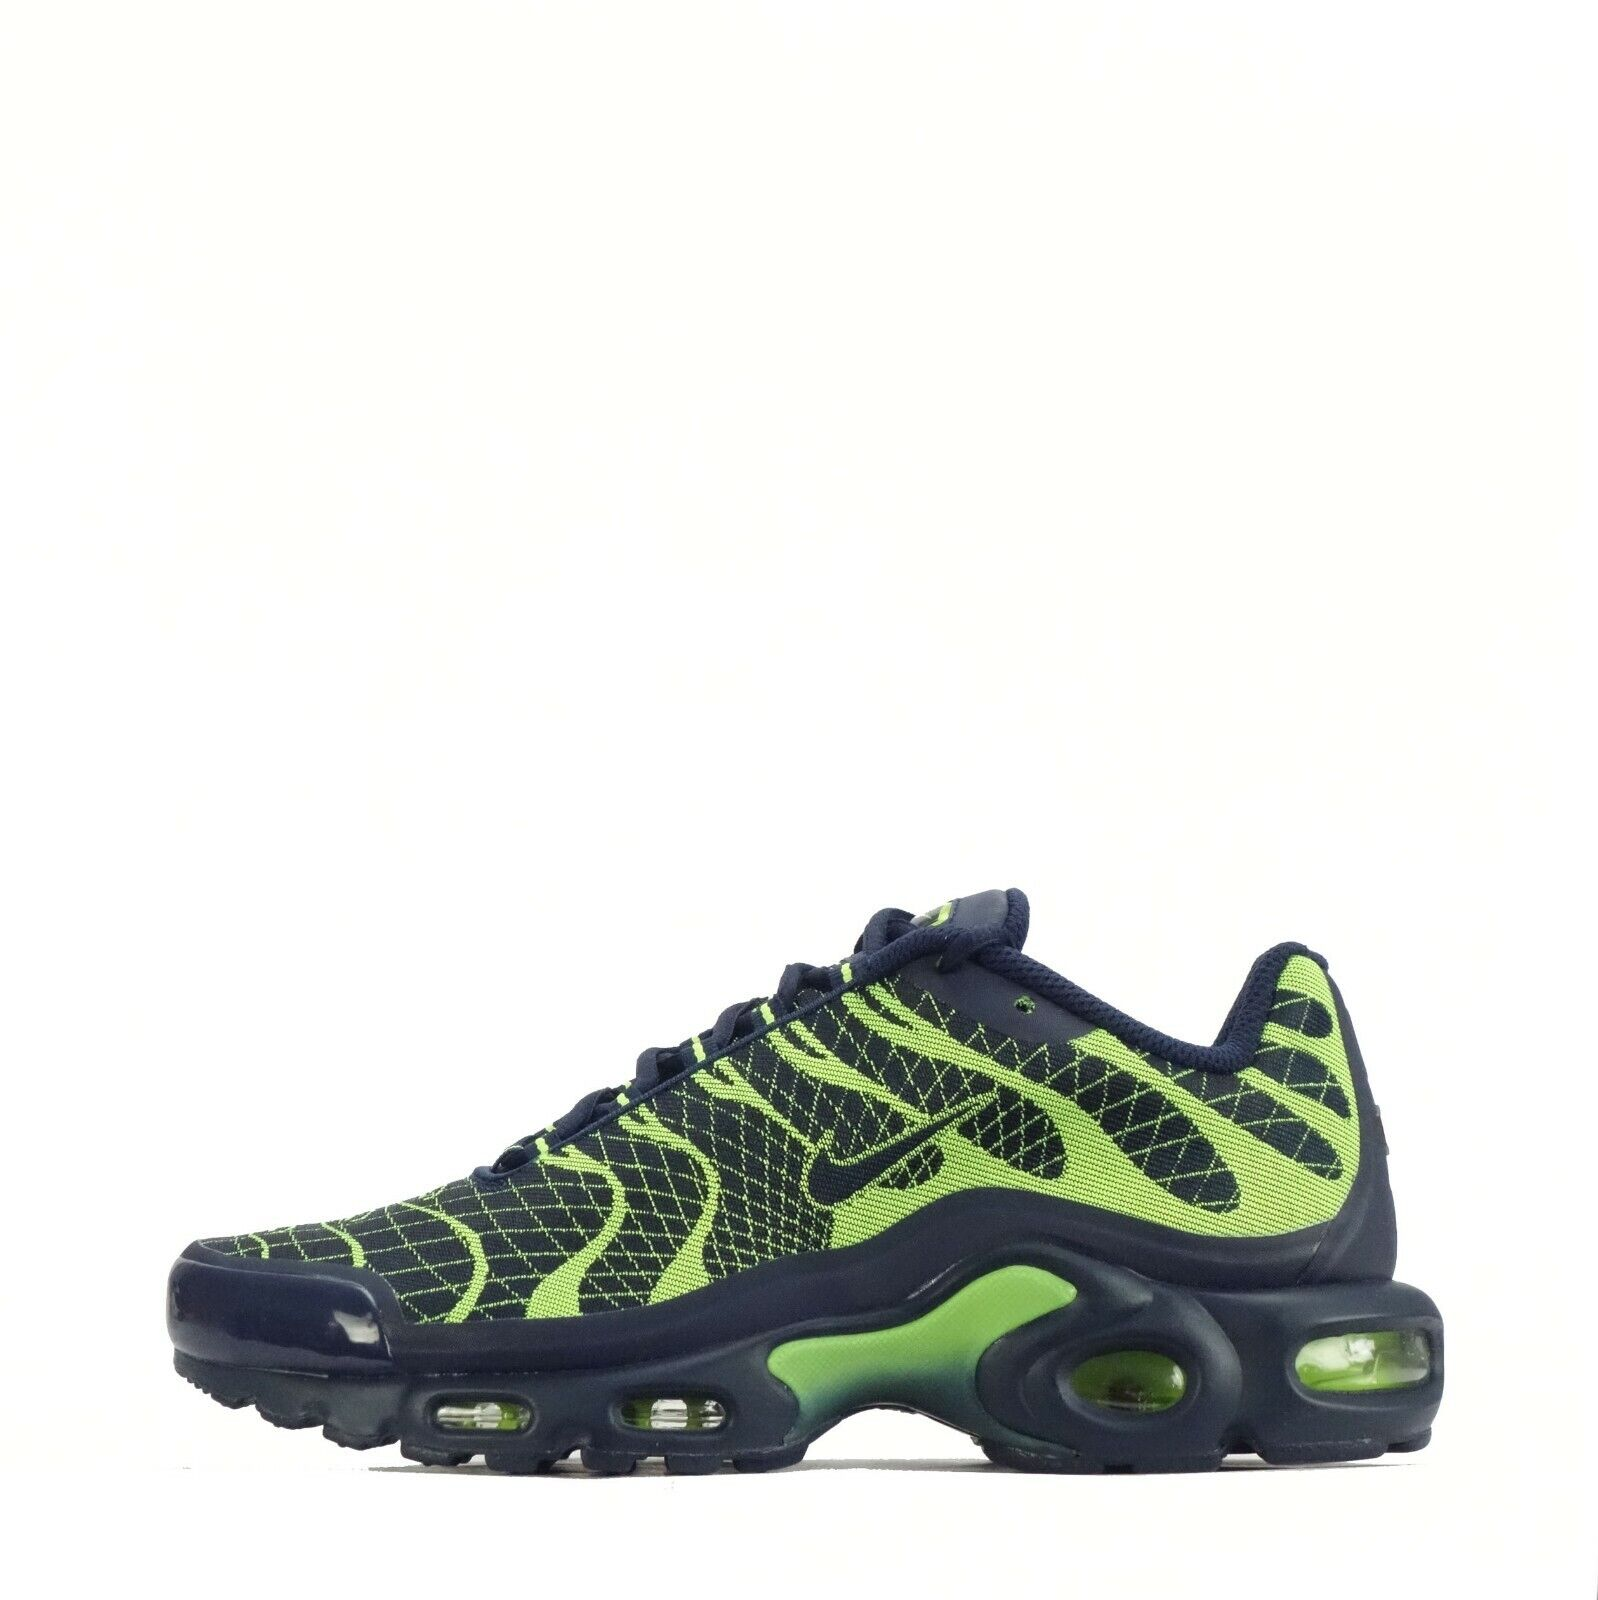 Nike Air Max Plus JCRD Mens Running